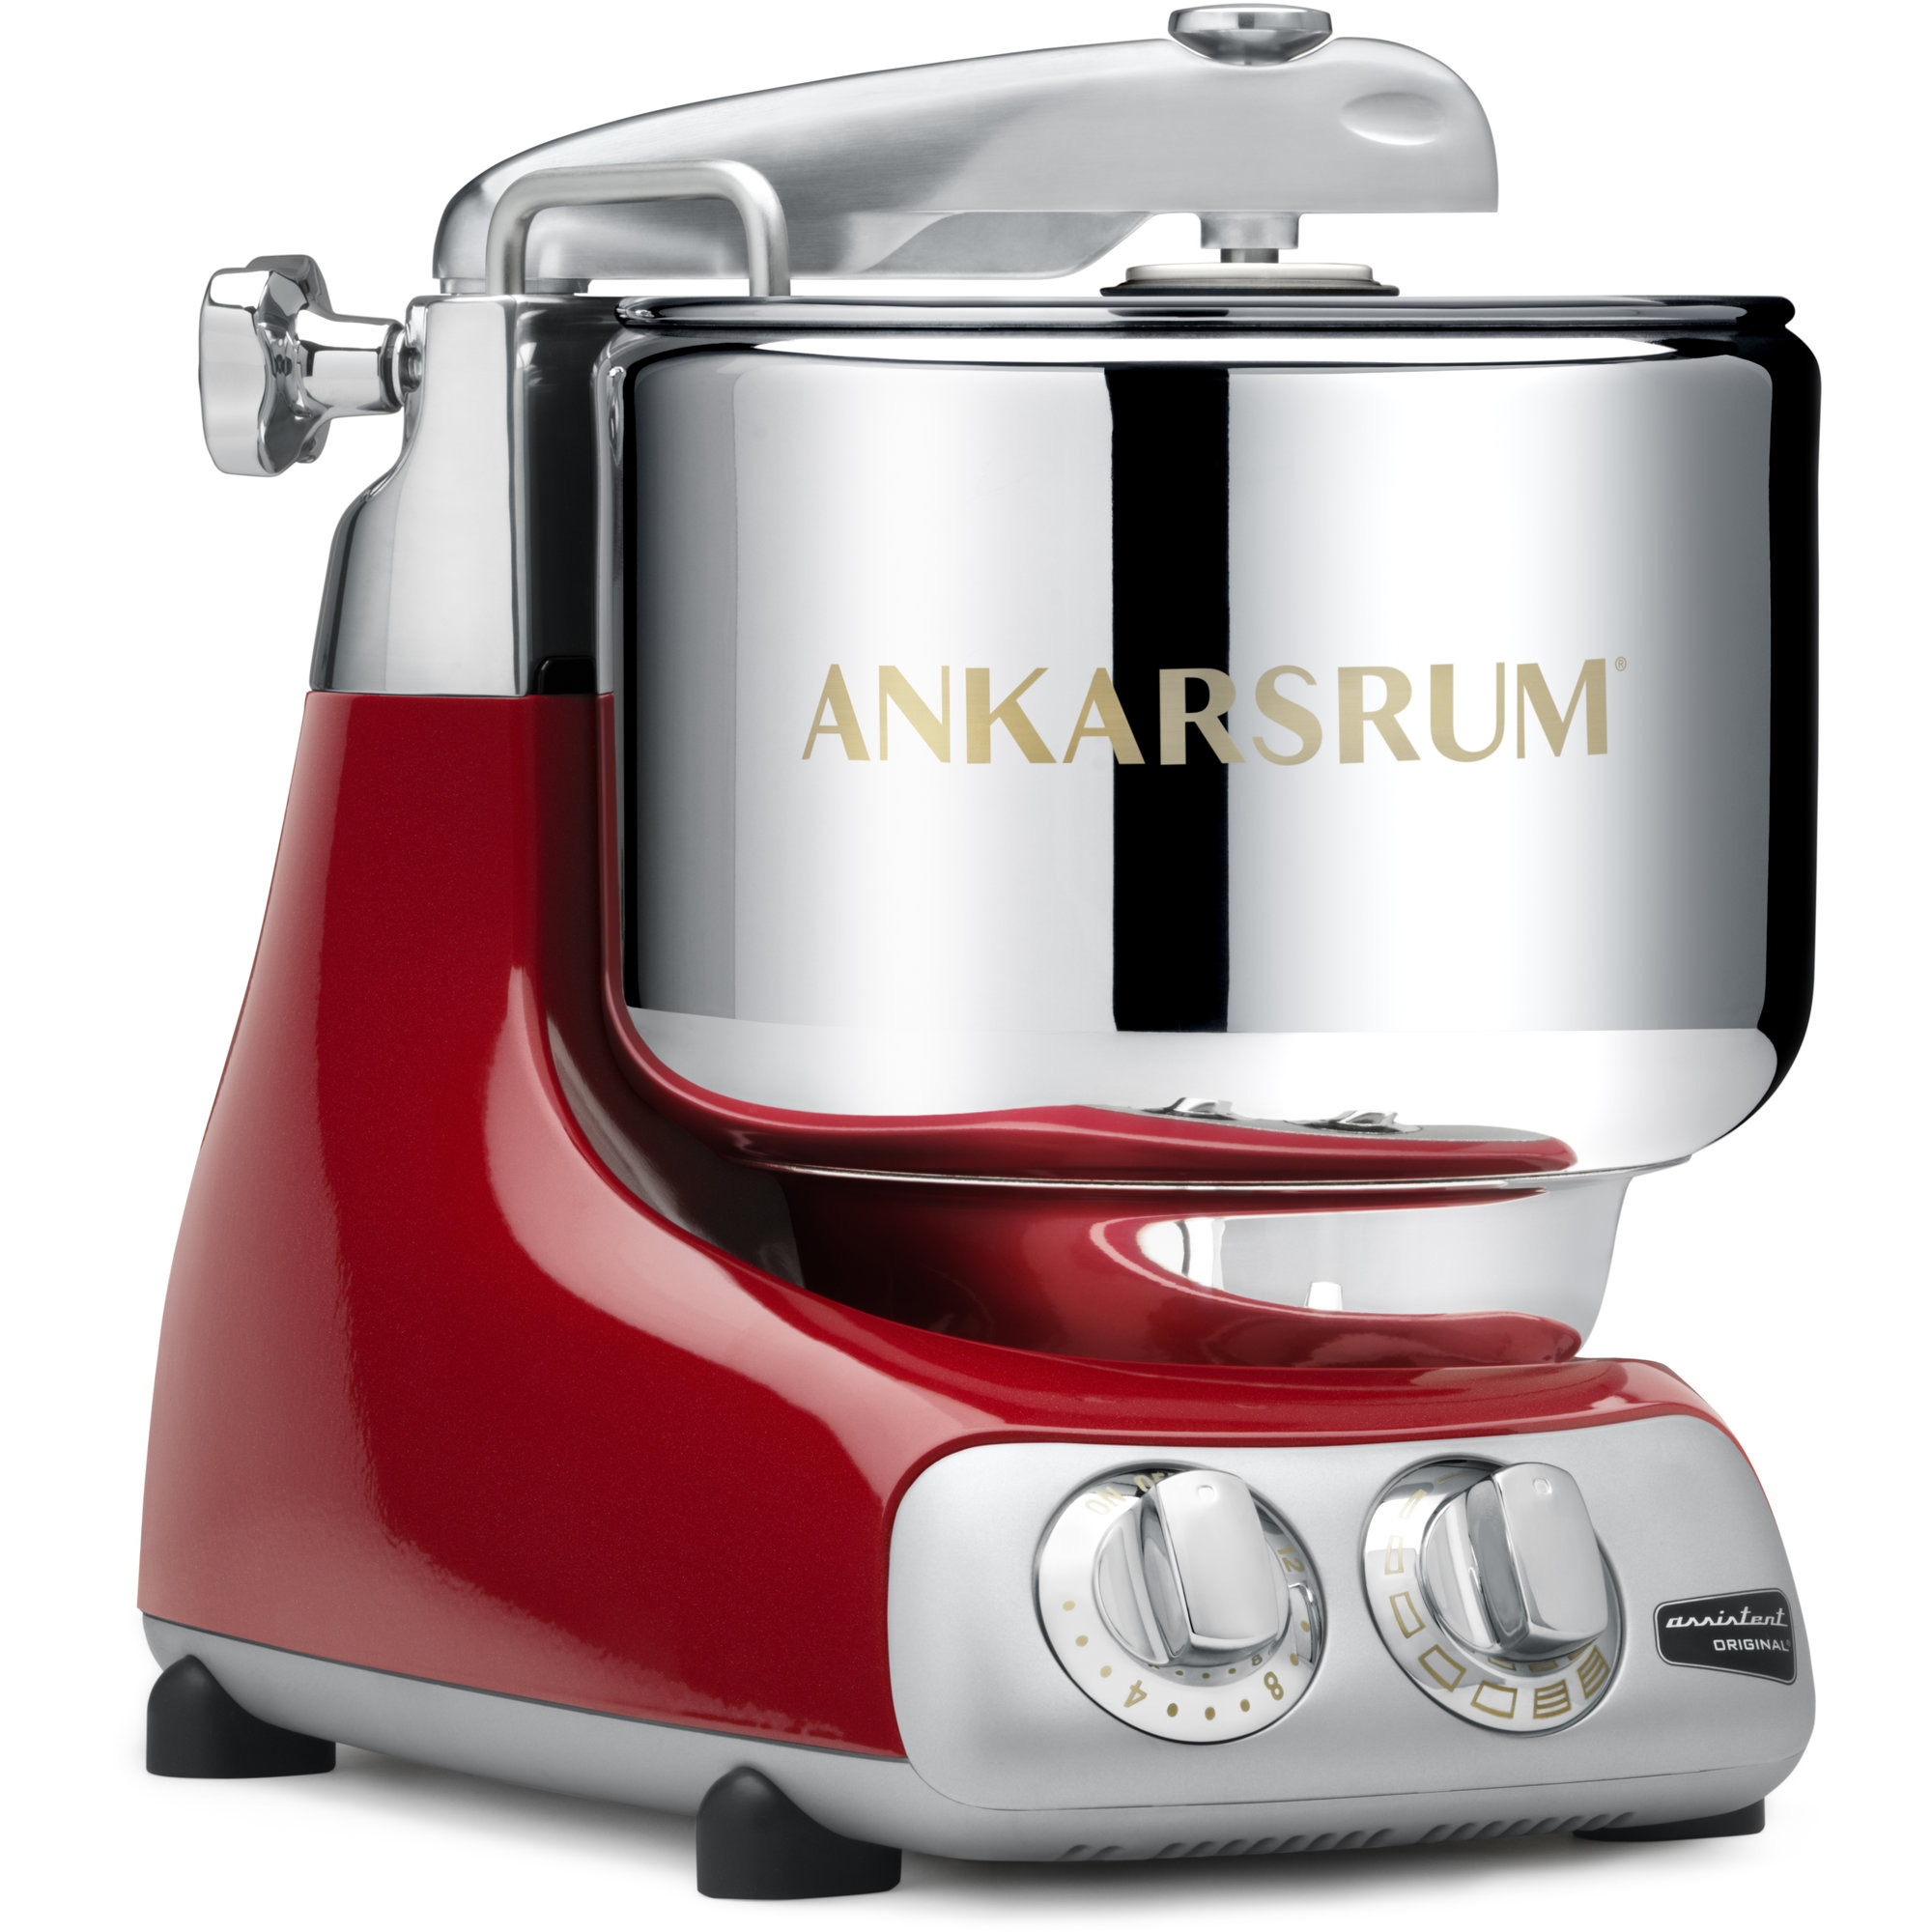 Ankarsrum Assistent Original Red AKM 6230 R